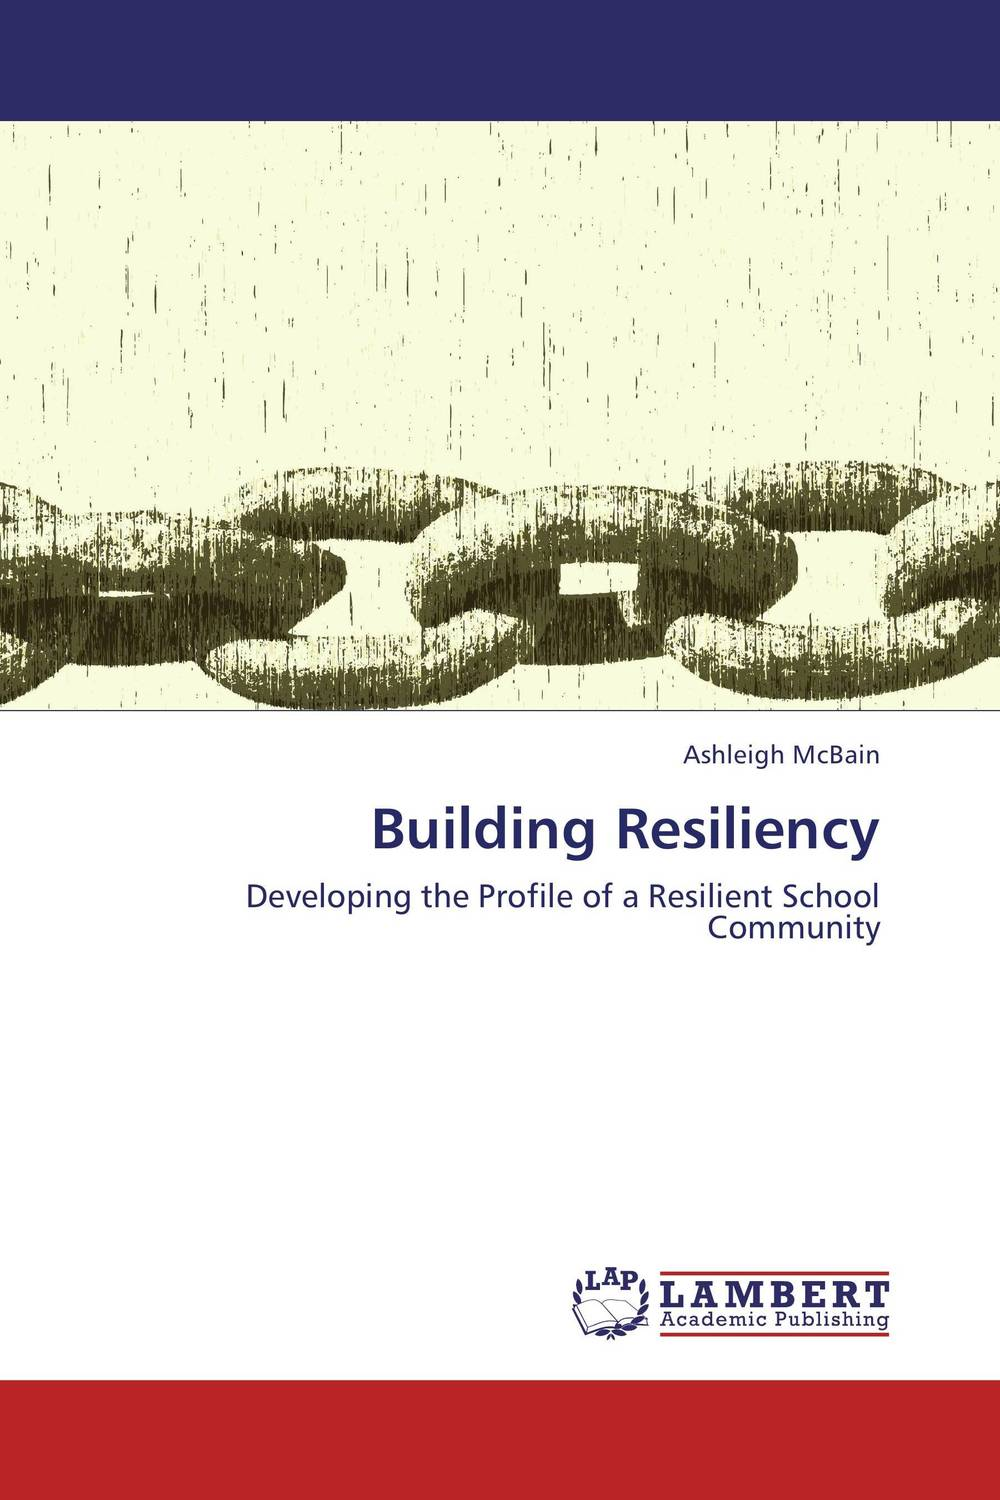 Building Resiliency toby bishop j corporate resiliency managing the growing risk of fraud and corruption